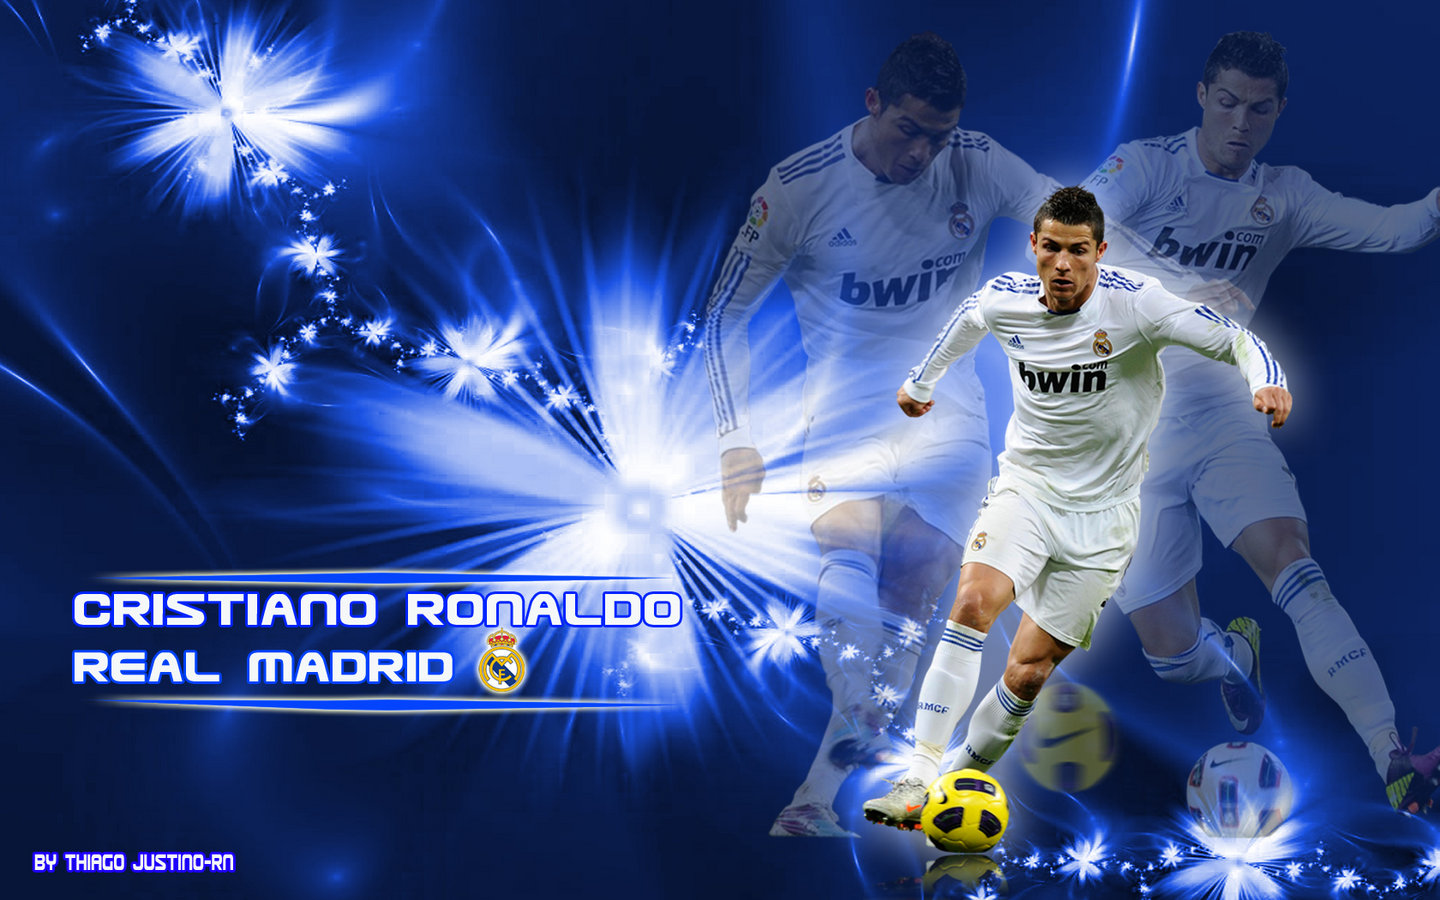 wallpaper_cr_cristiano_ronaldo_real_madrid_880159